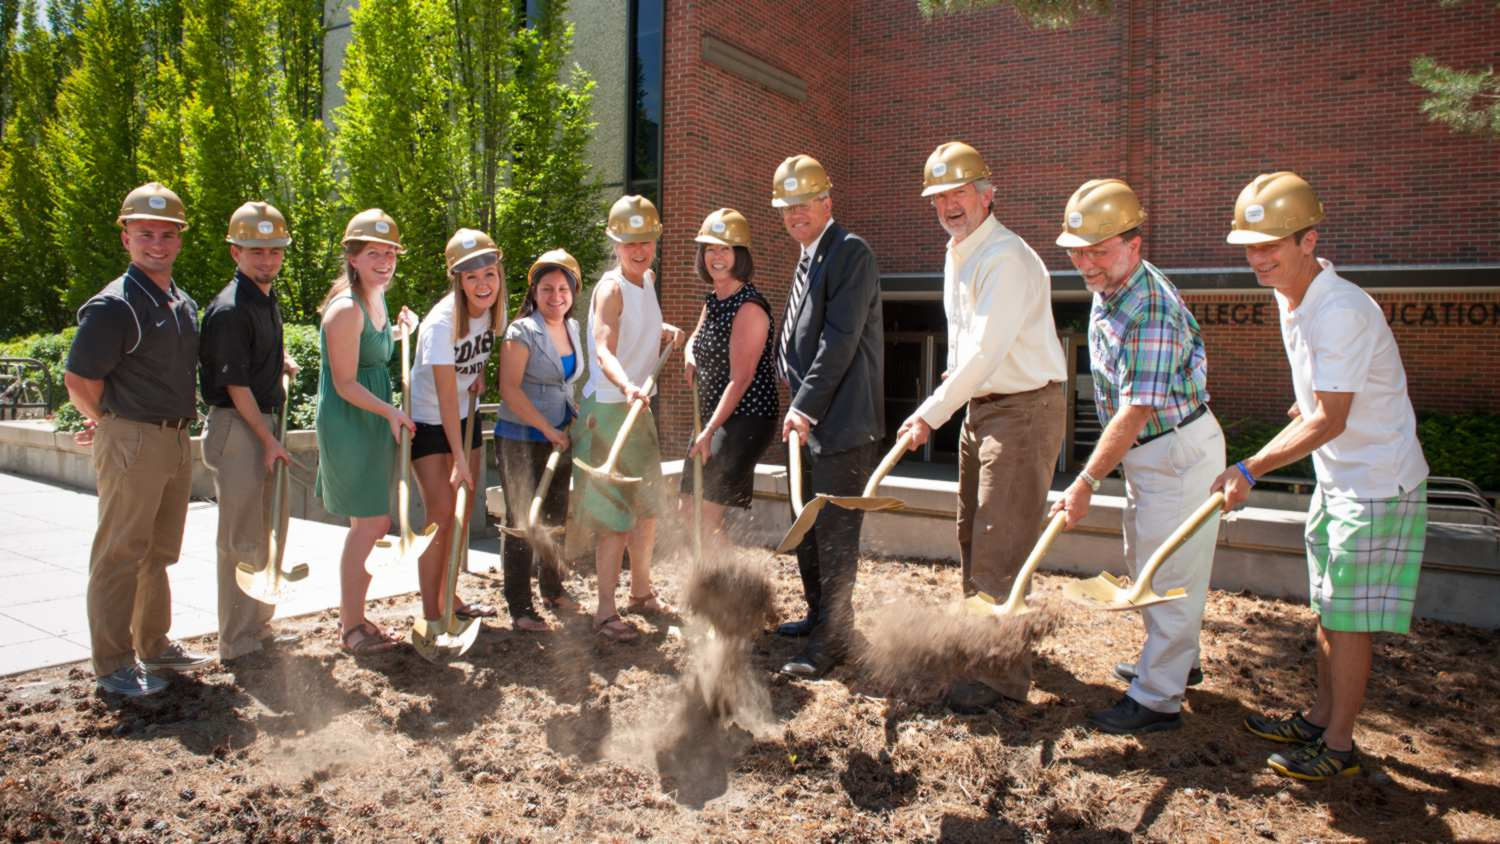 President Chuck Staben and faculty with shovels and hardhats at the groundbreaking ceremony.